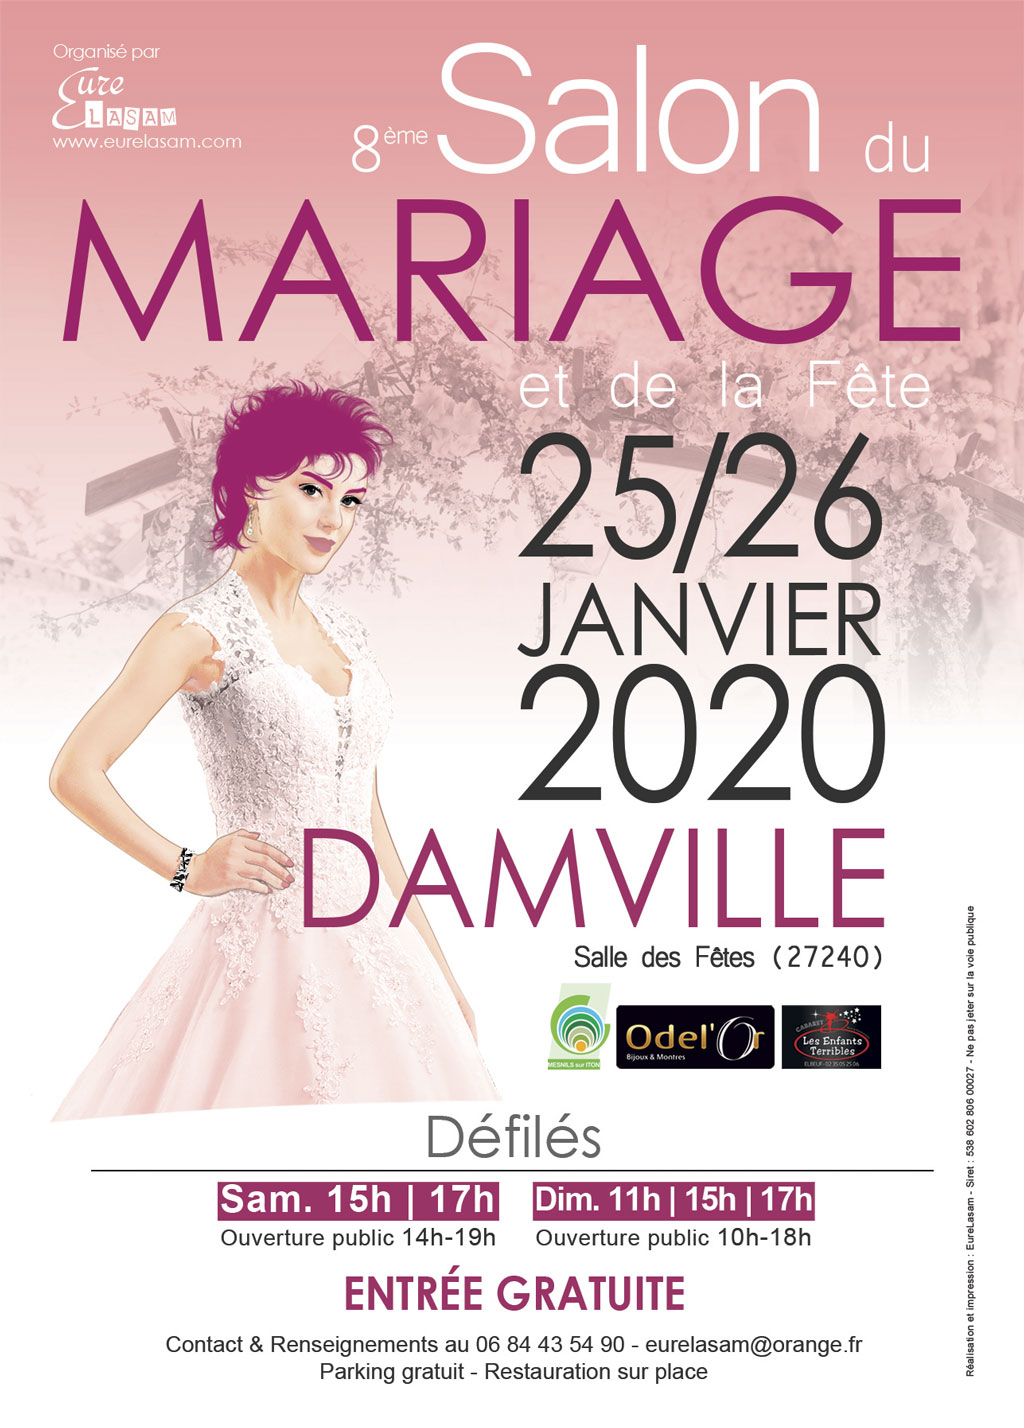 Salon Damville 2020 Rose poudré 50x70